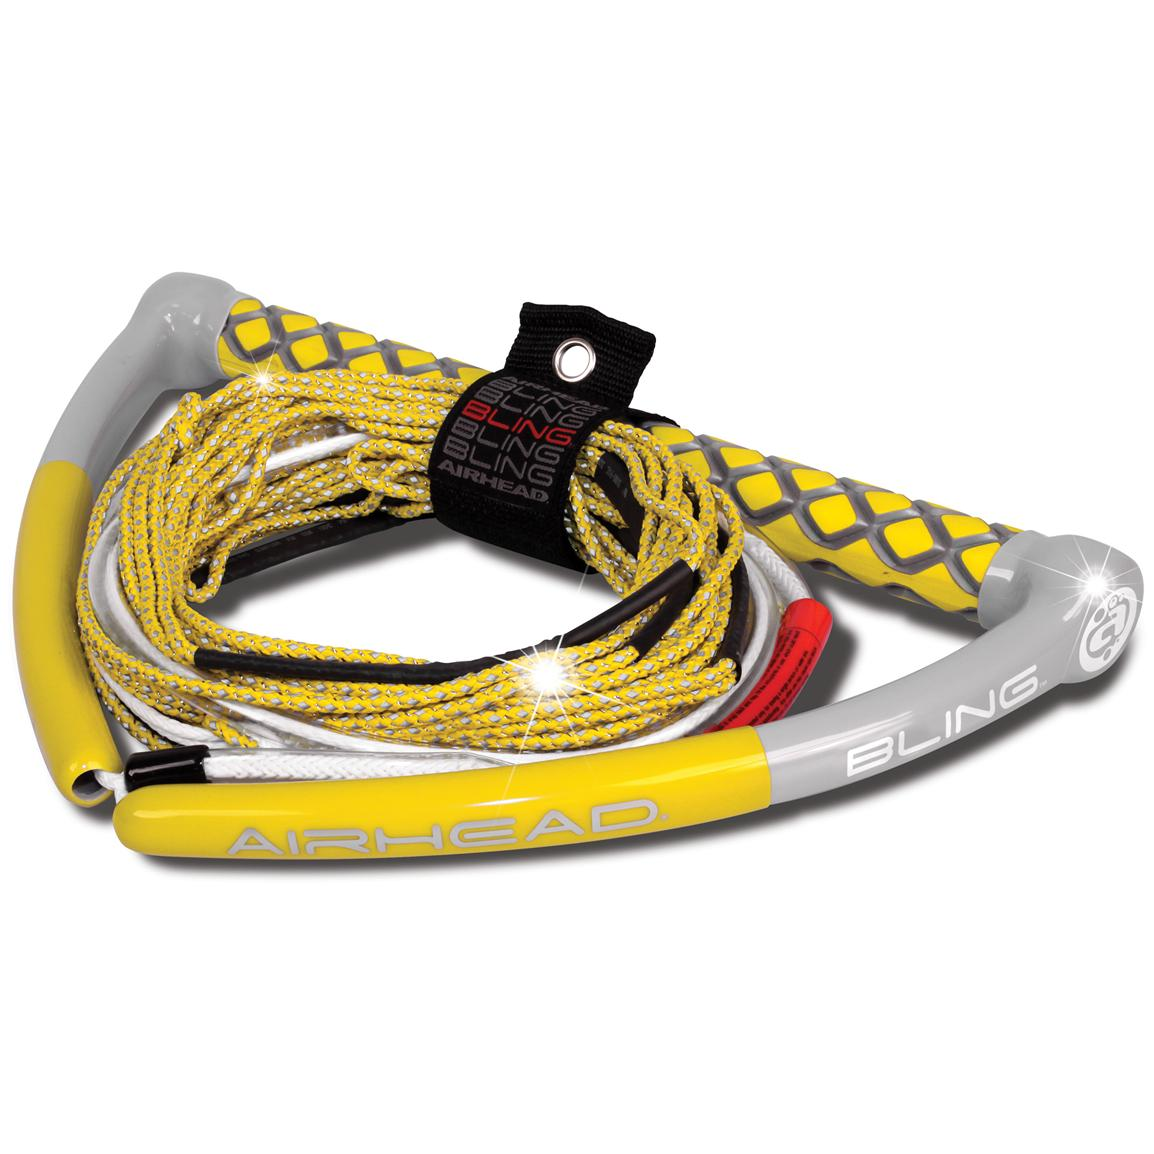 Airhead® Bling Spectra 75' Wakeboard Tow Rope, Yellow